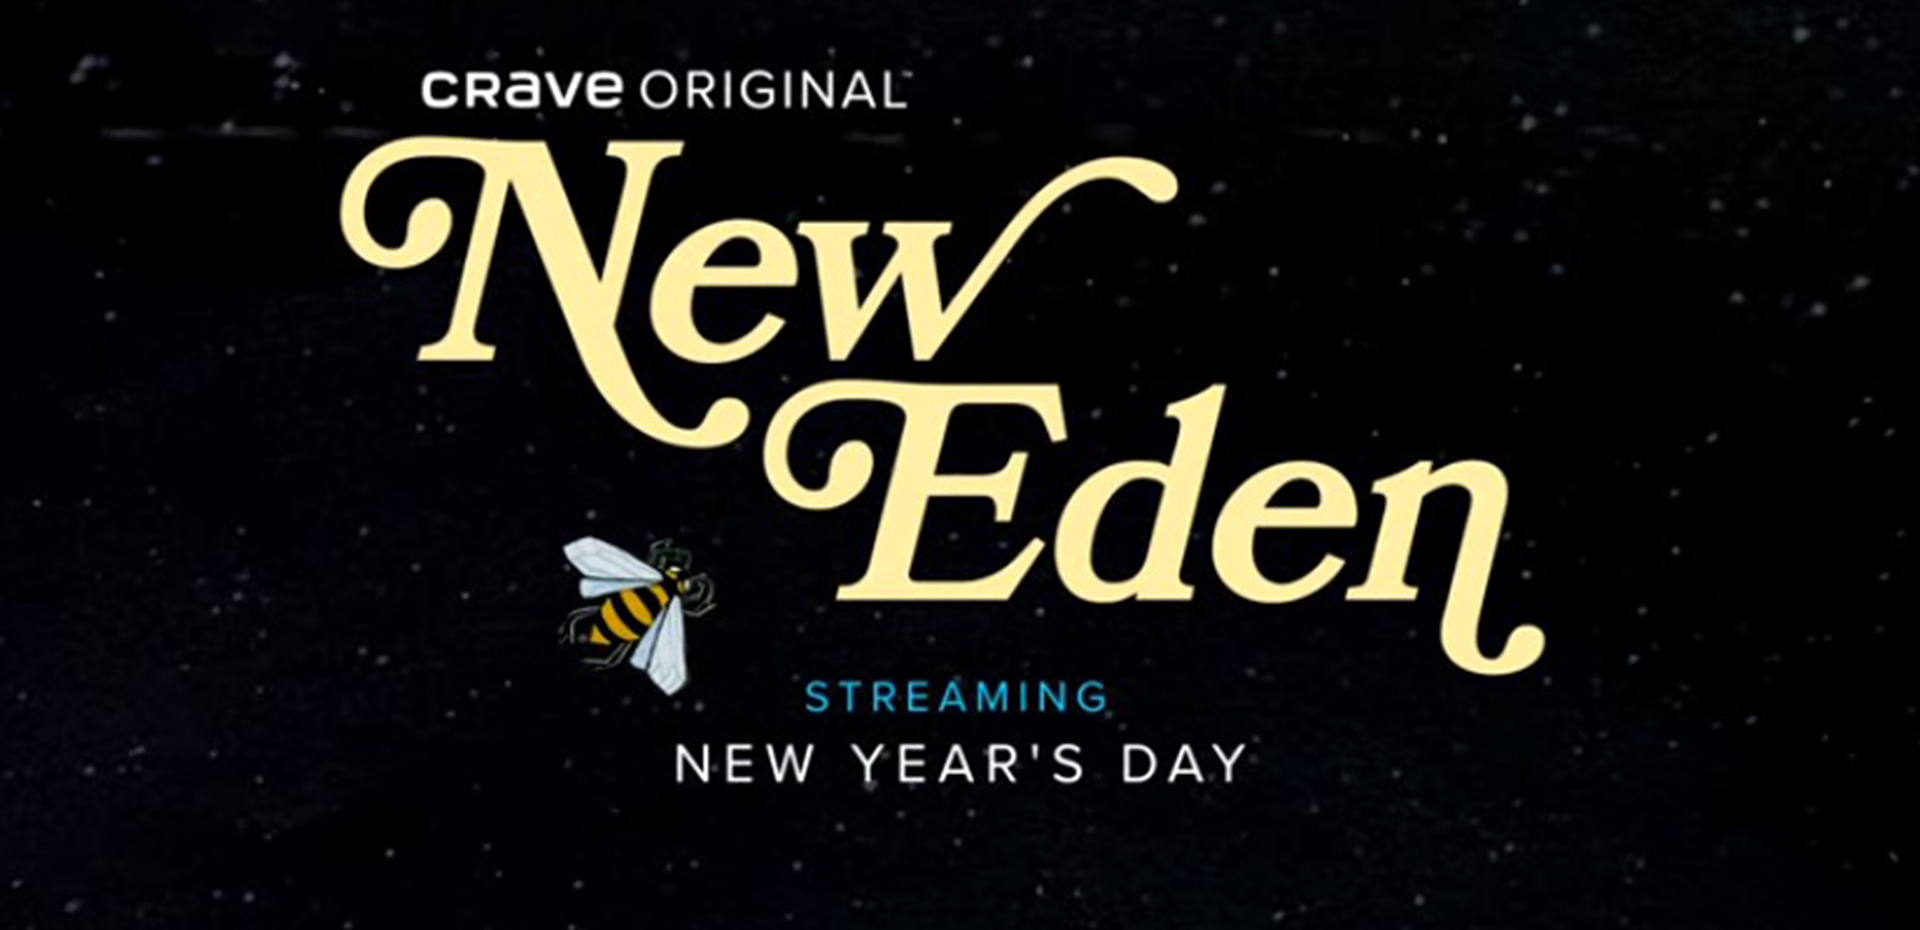 Official Trailer Released for Crave Original Series NEW EDEN, Dropping New Year's Day